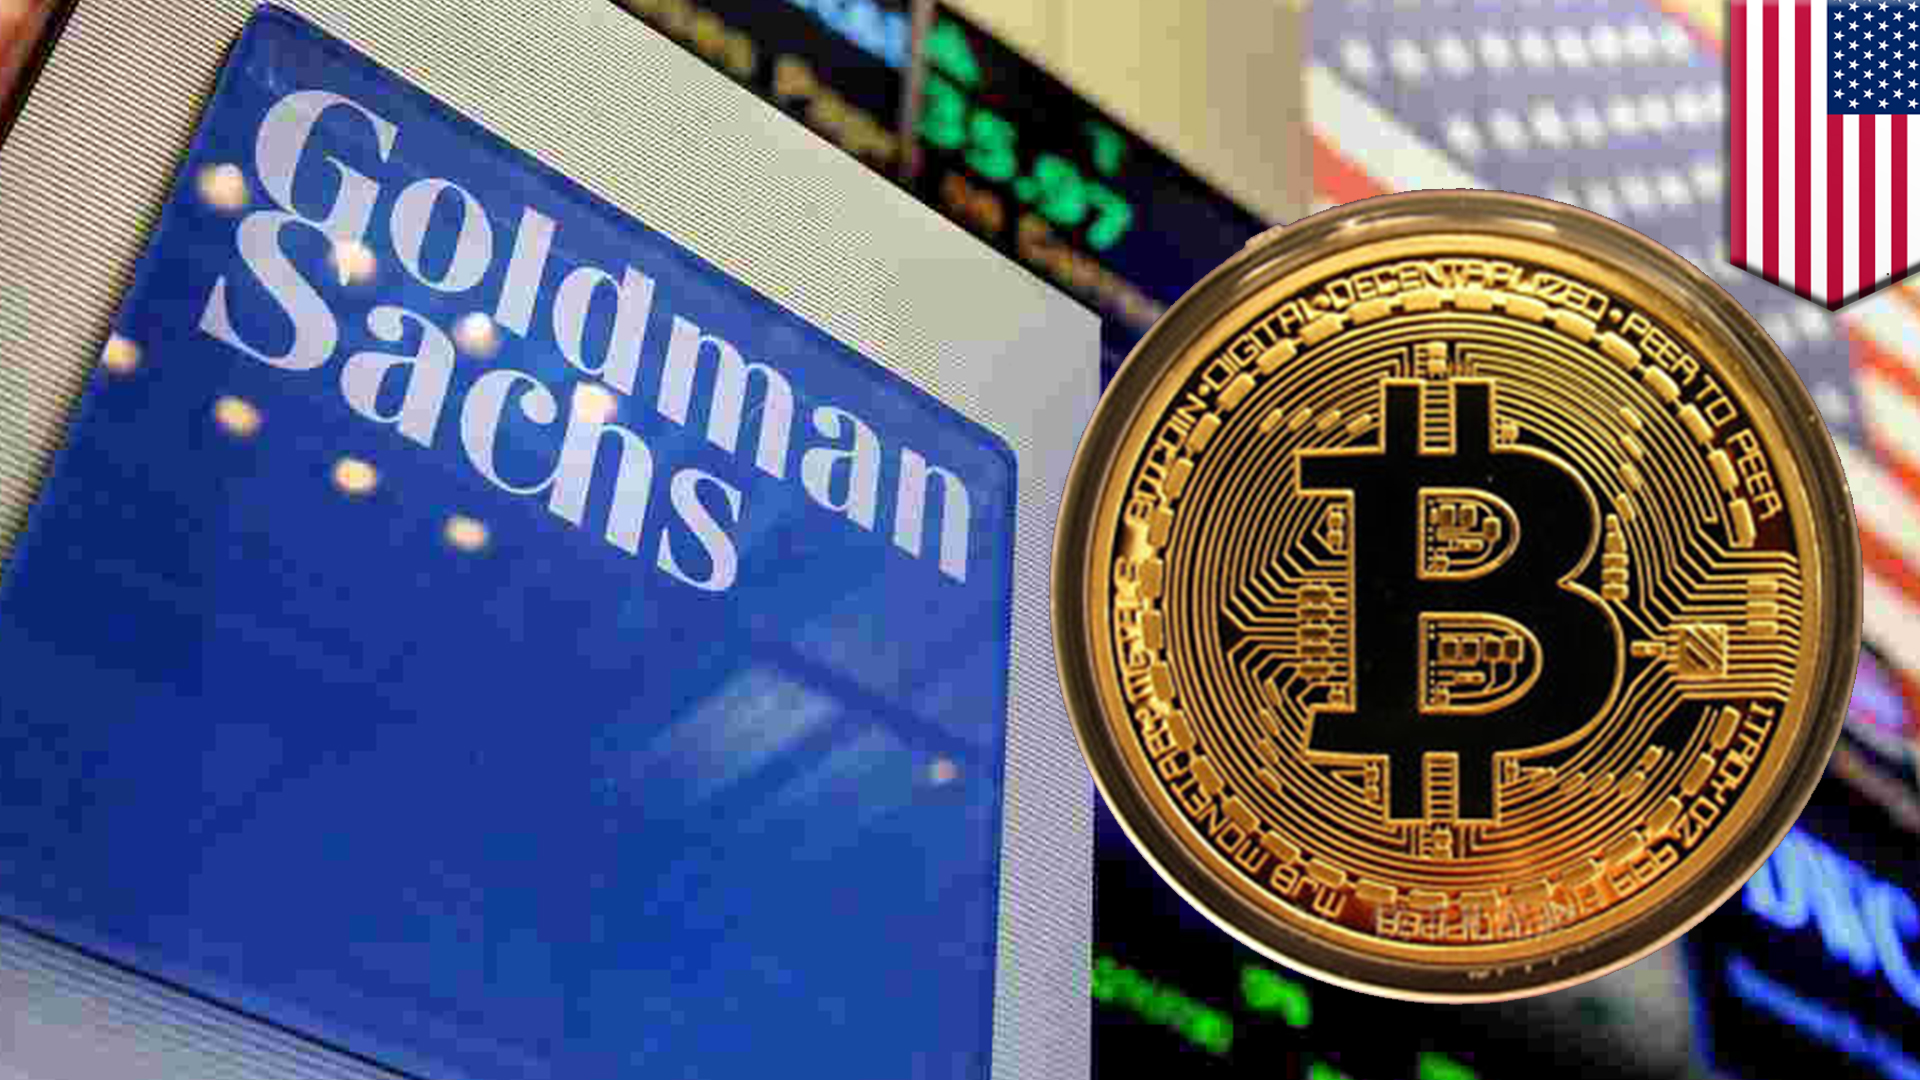 Goldman Sachs to start bitcoin trading operation